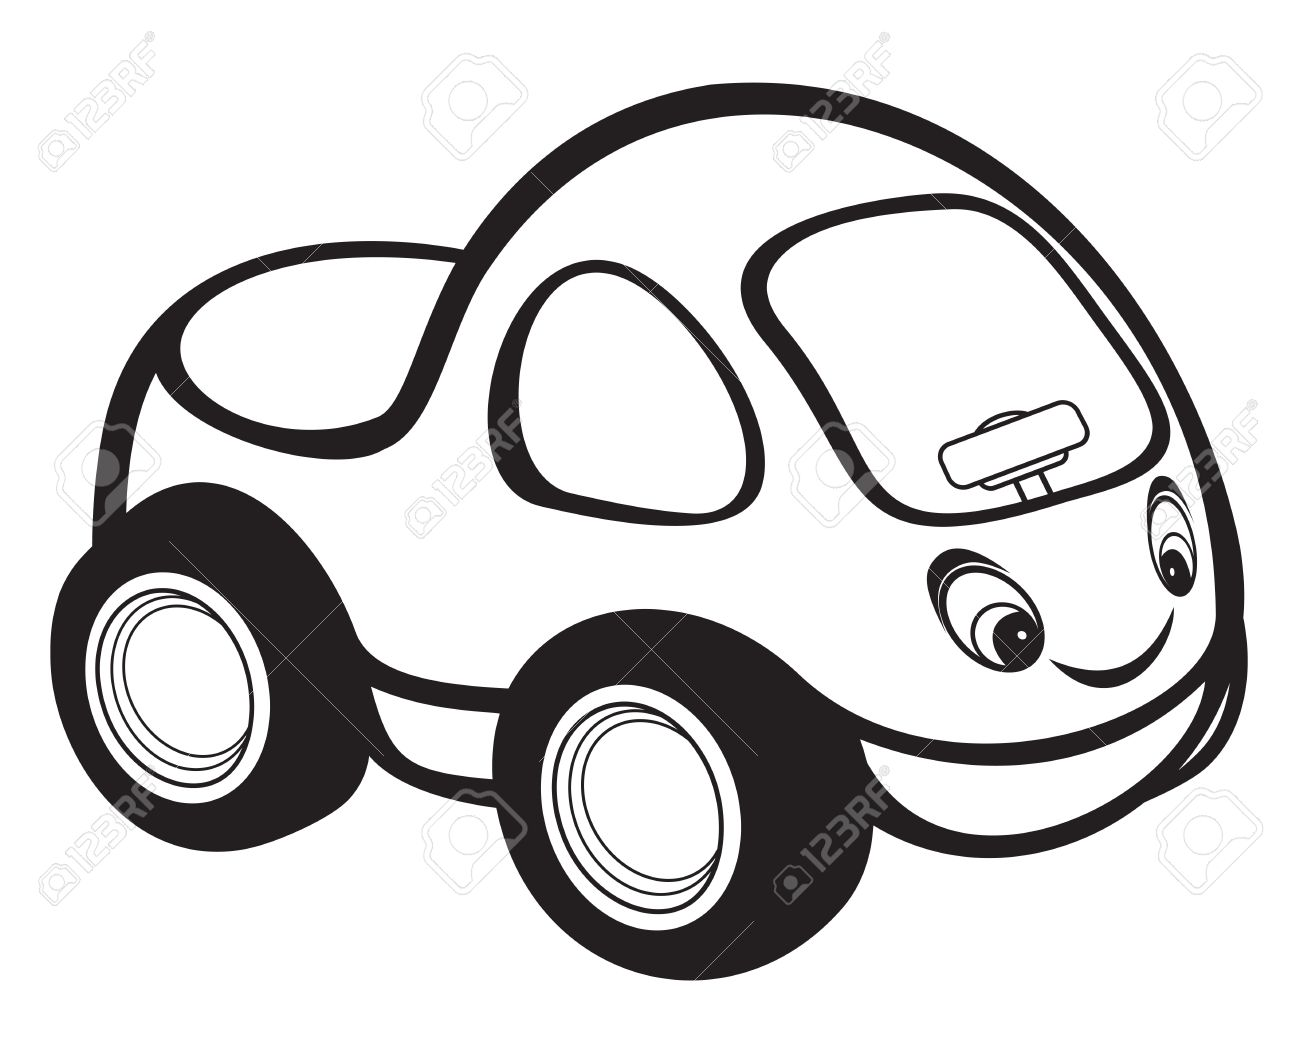 Car Outline Images furthermore Royalty Free Stock Photos Man Alcohol Test Image18855318 furthermore Acting Call Drivers In Nagercoil furthermore Small Truck Vector 9863628 also Racing Car Silhouette Illustration Image 11503328. on driving car clipart